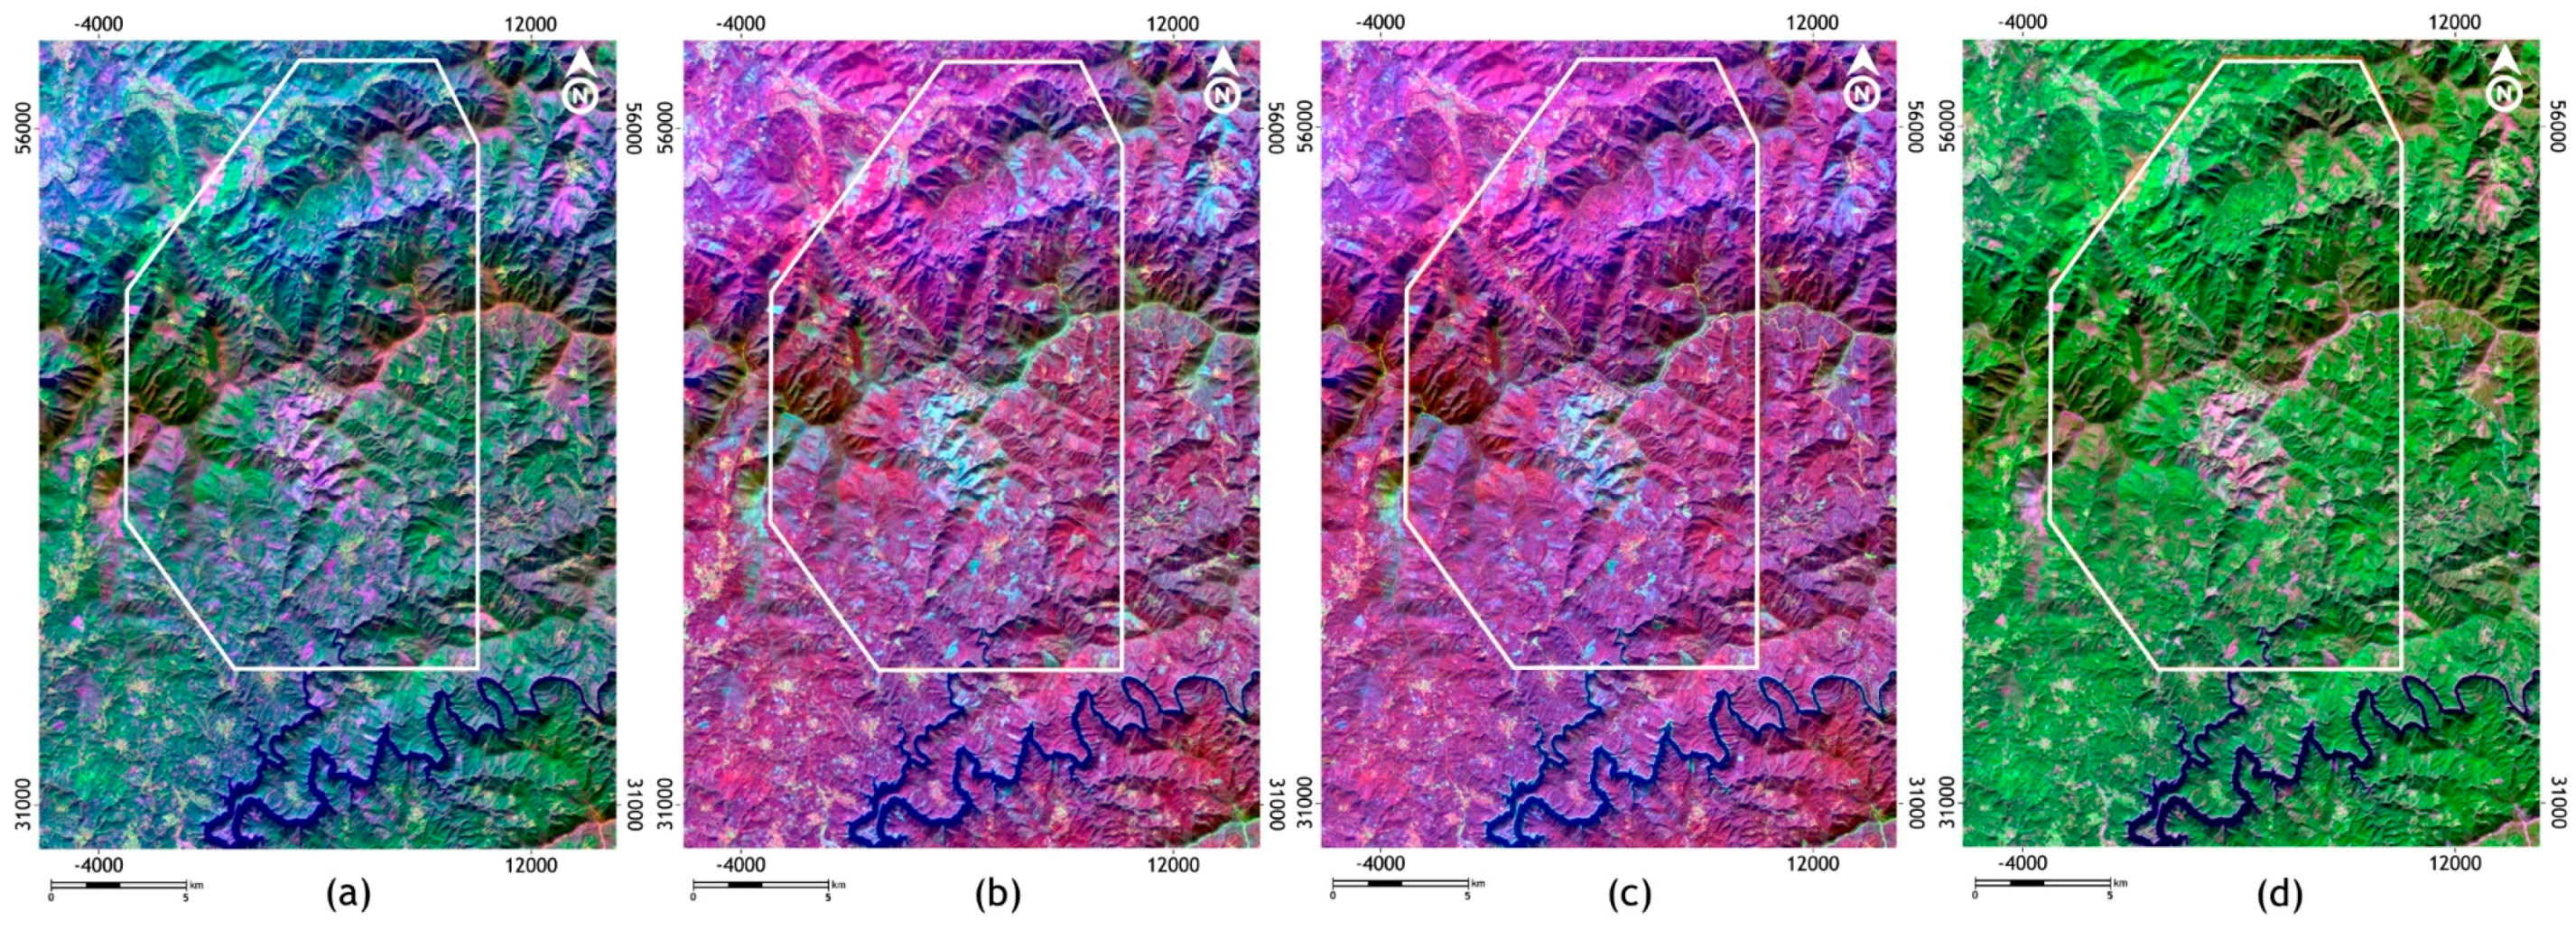 Minerals | Free Full-Text | Remote Sensing for Mineral Exploration